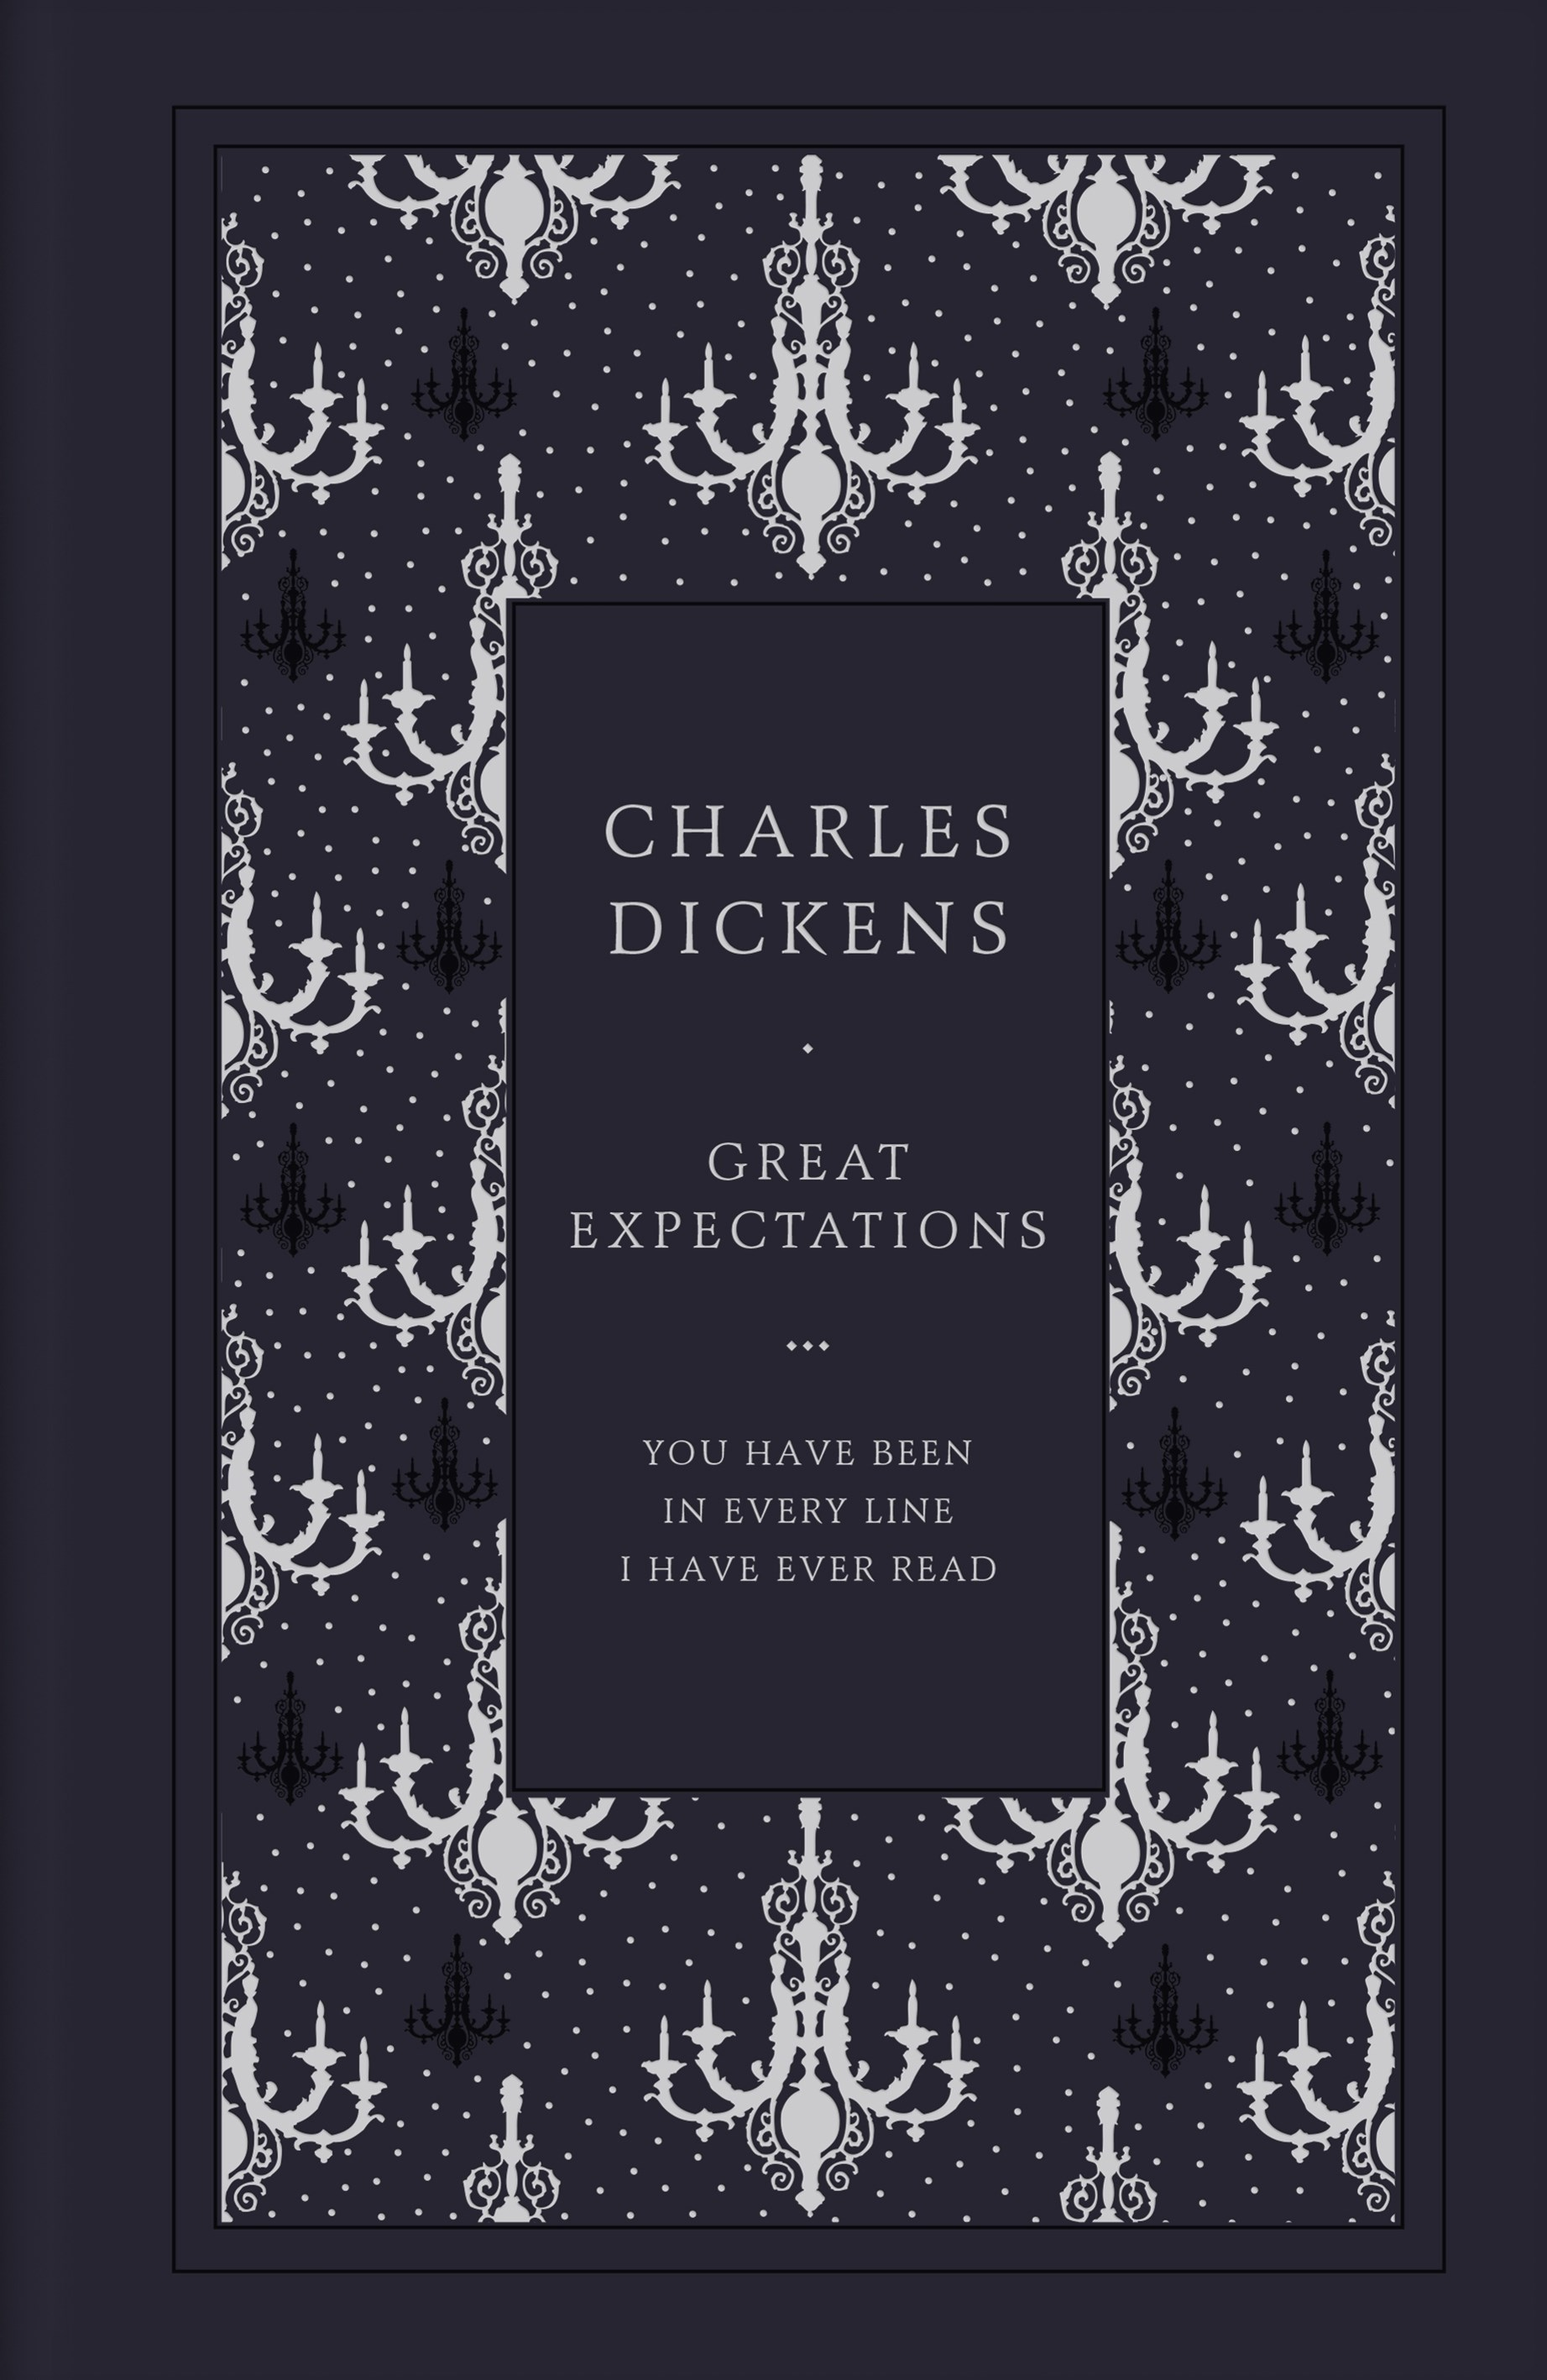 Great Expectations (Faux Leather Edition): Design by Coralie Bickford-Smith